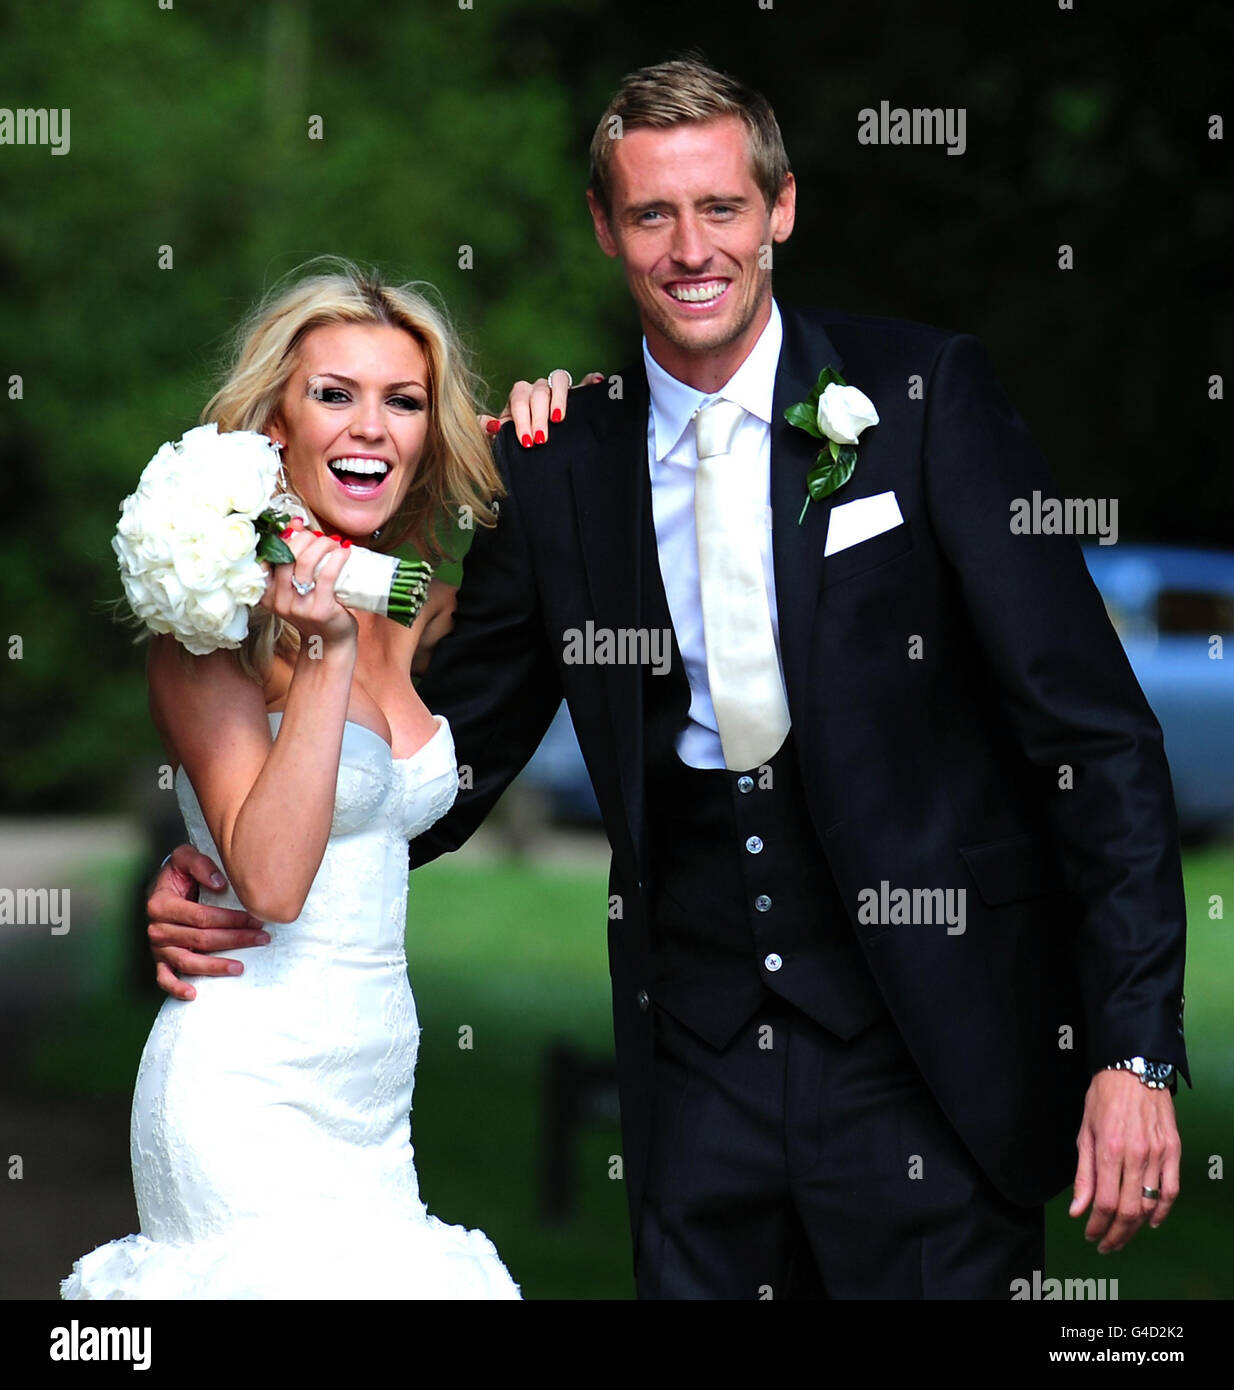 peter crouch and abbey clancy wedding stock photo